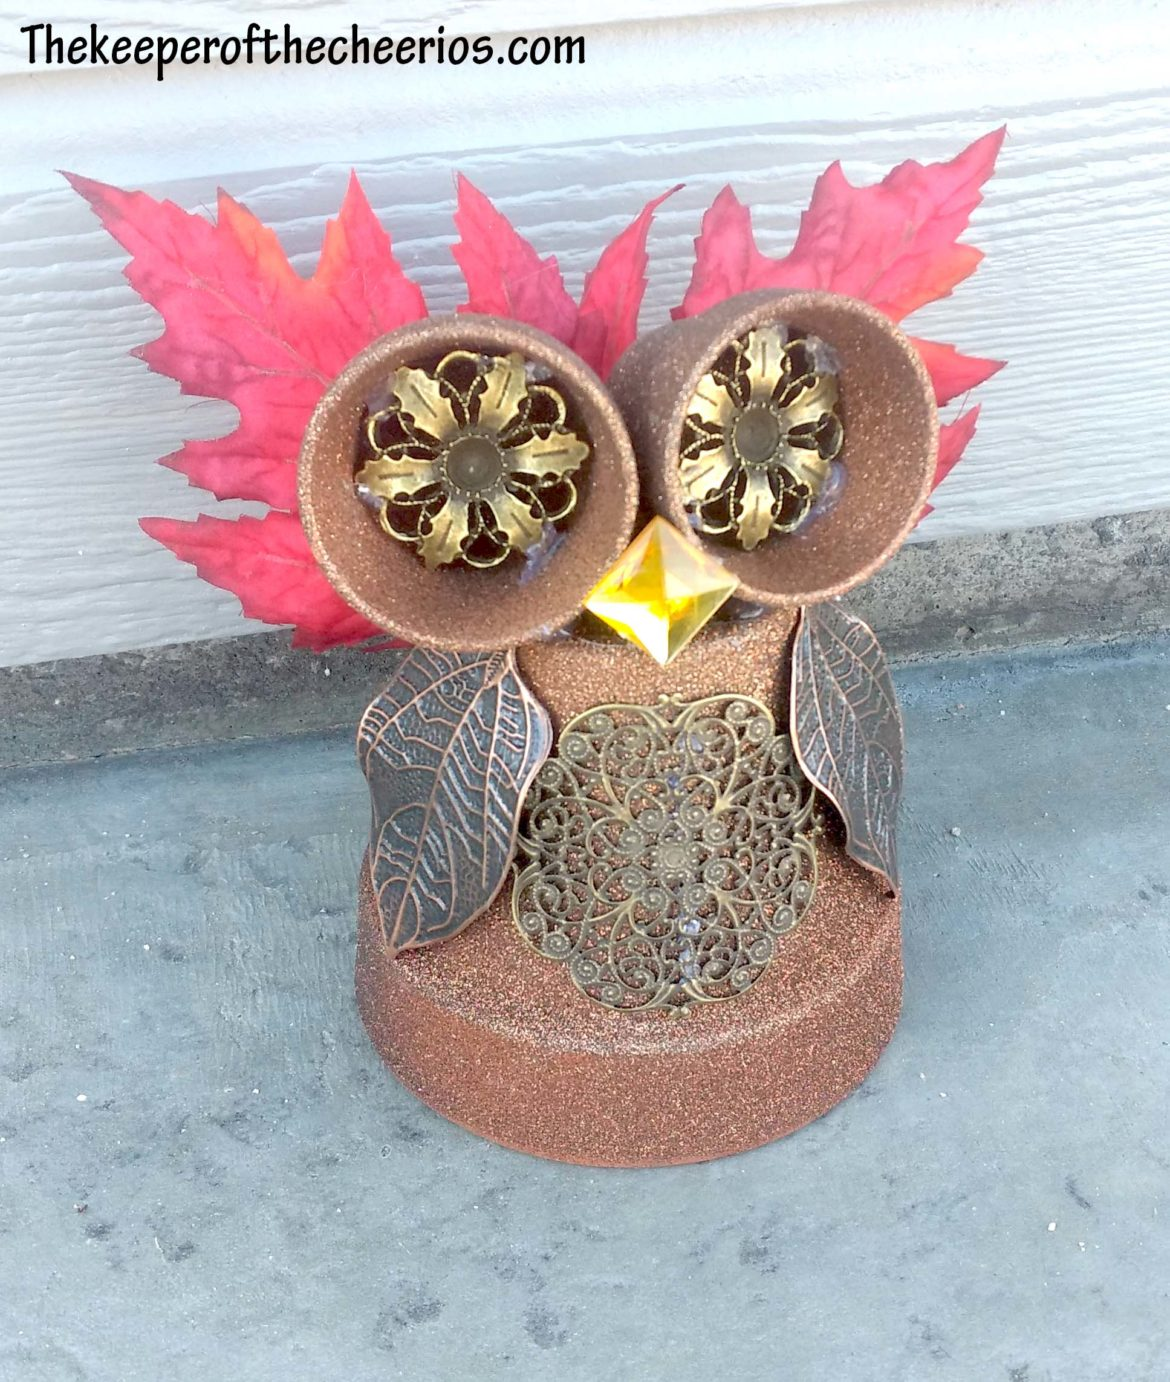 Clay Pot Owl The Keeper Of The Cheerios